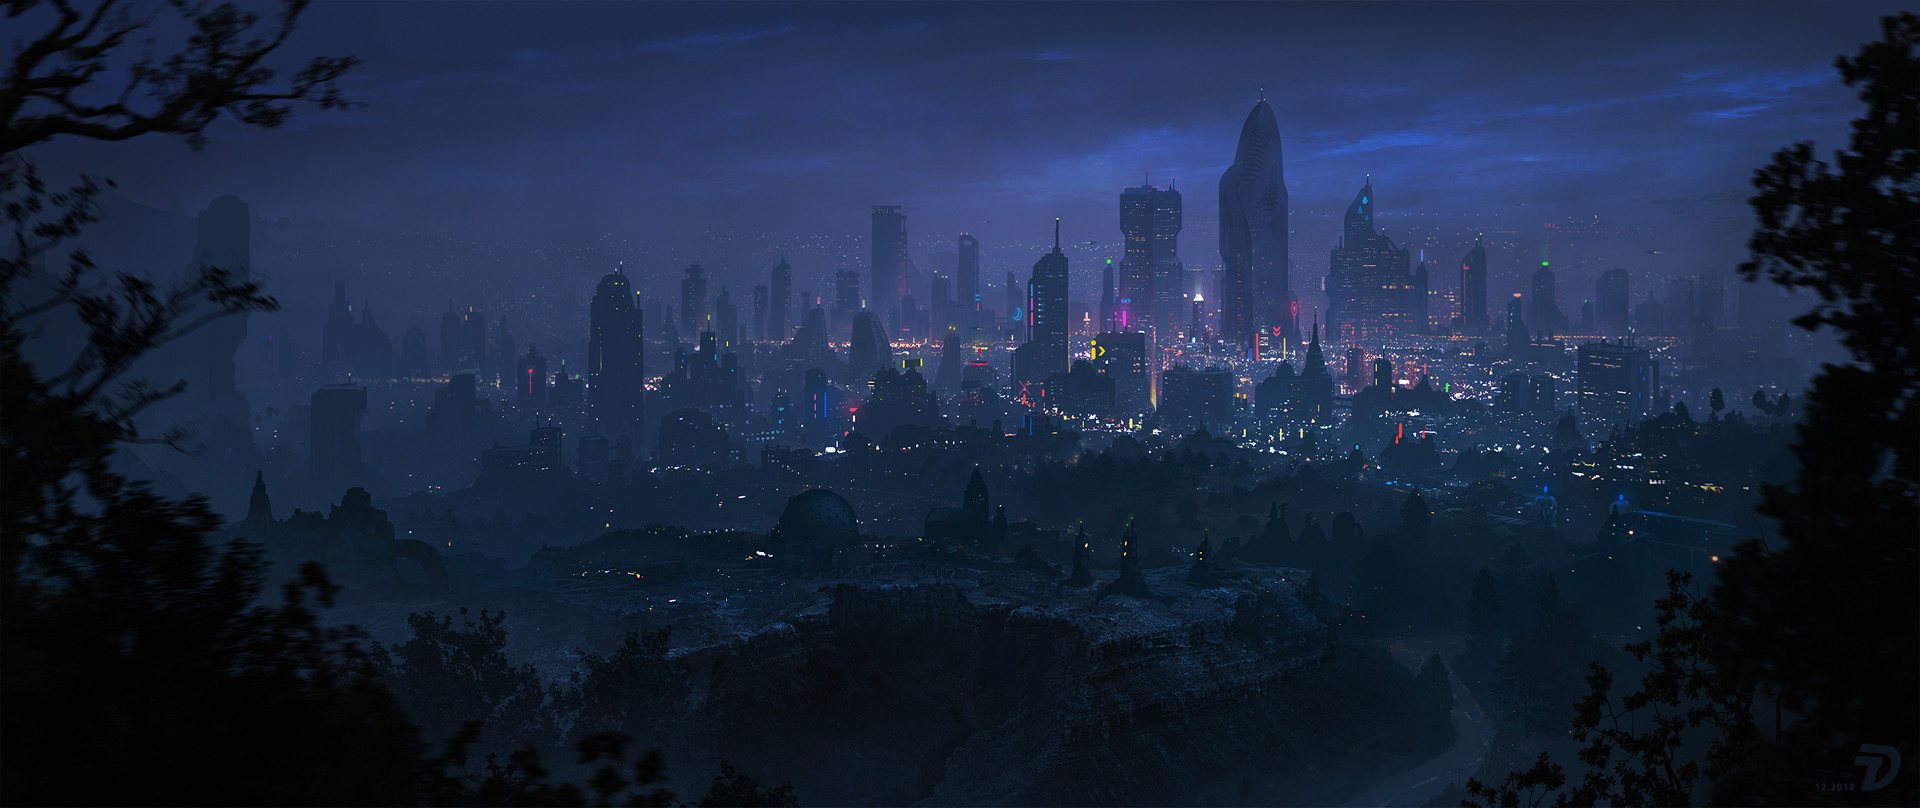 General 1920x808 city night city lights cityscape cliff glowing